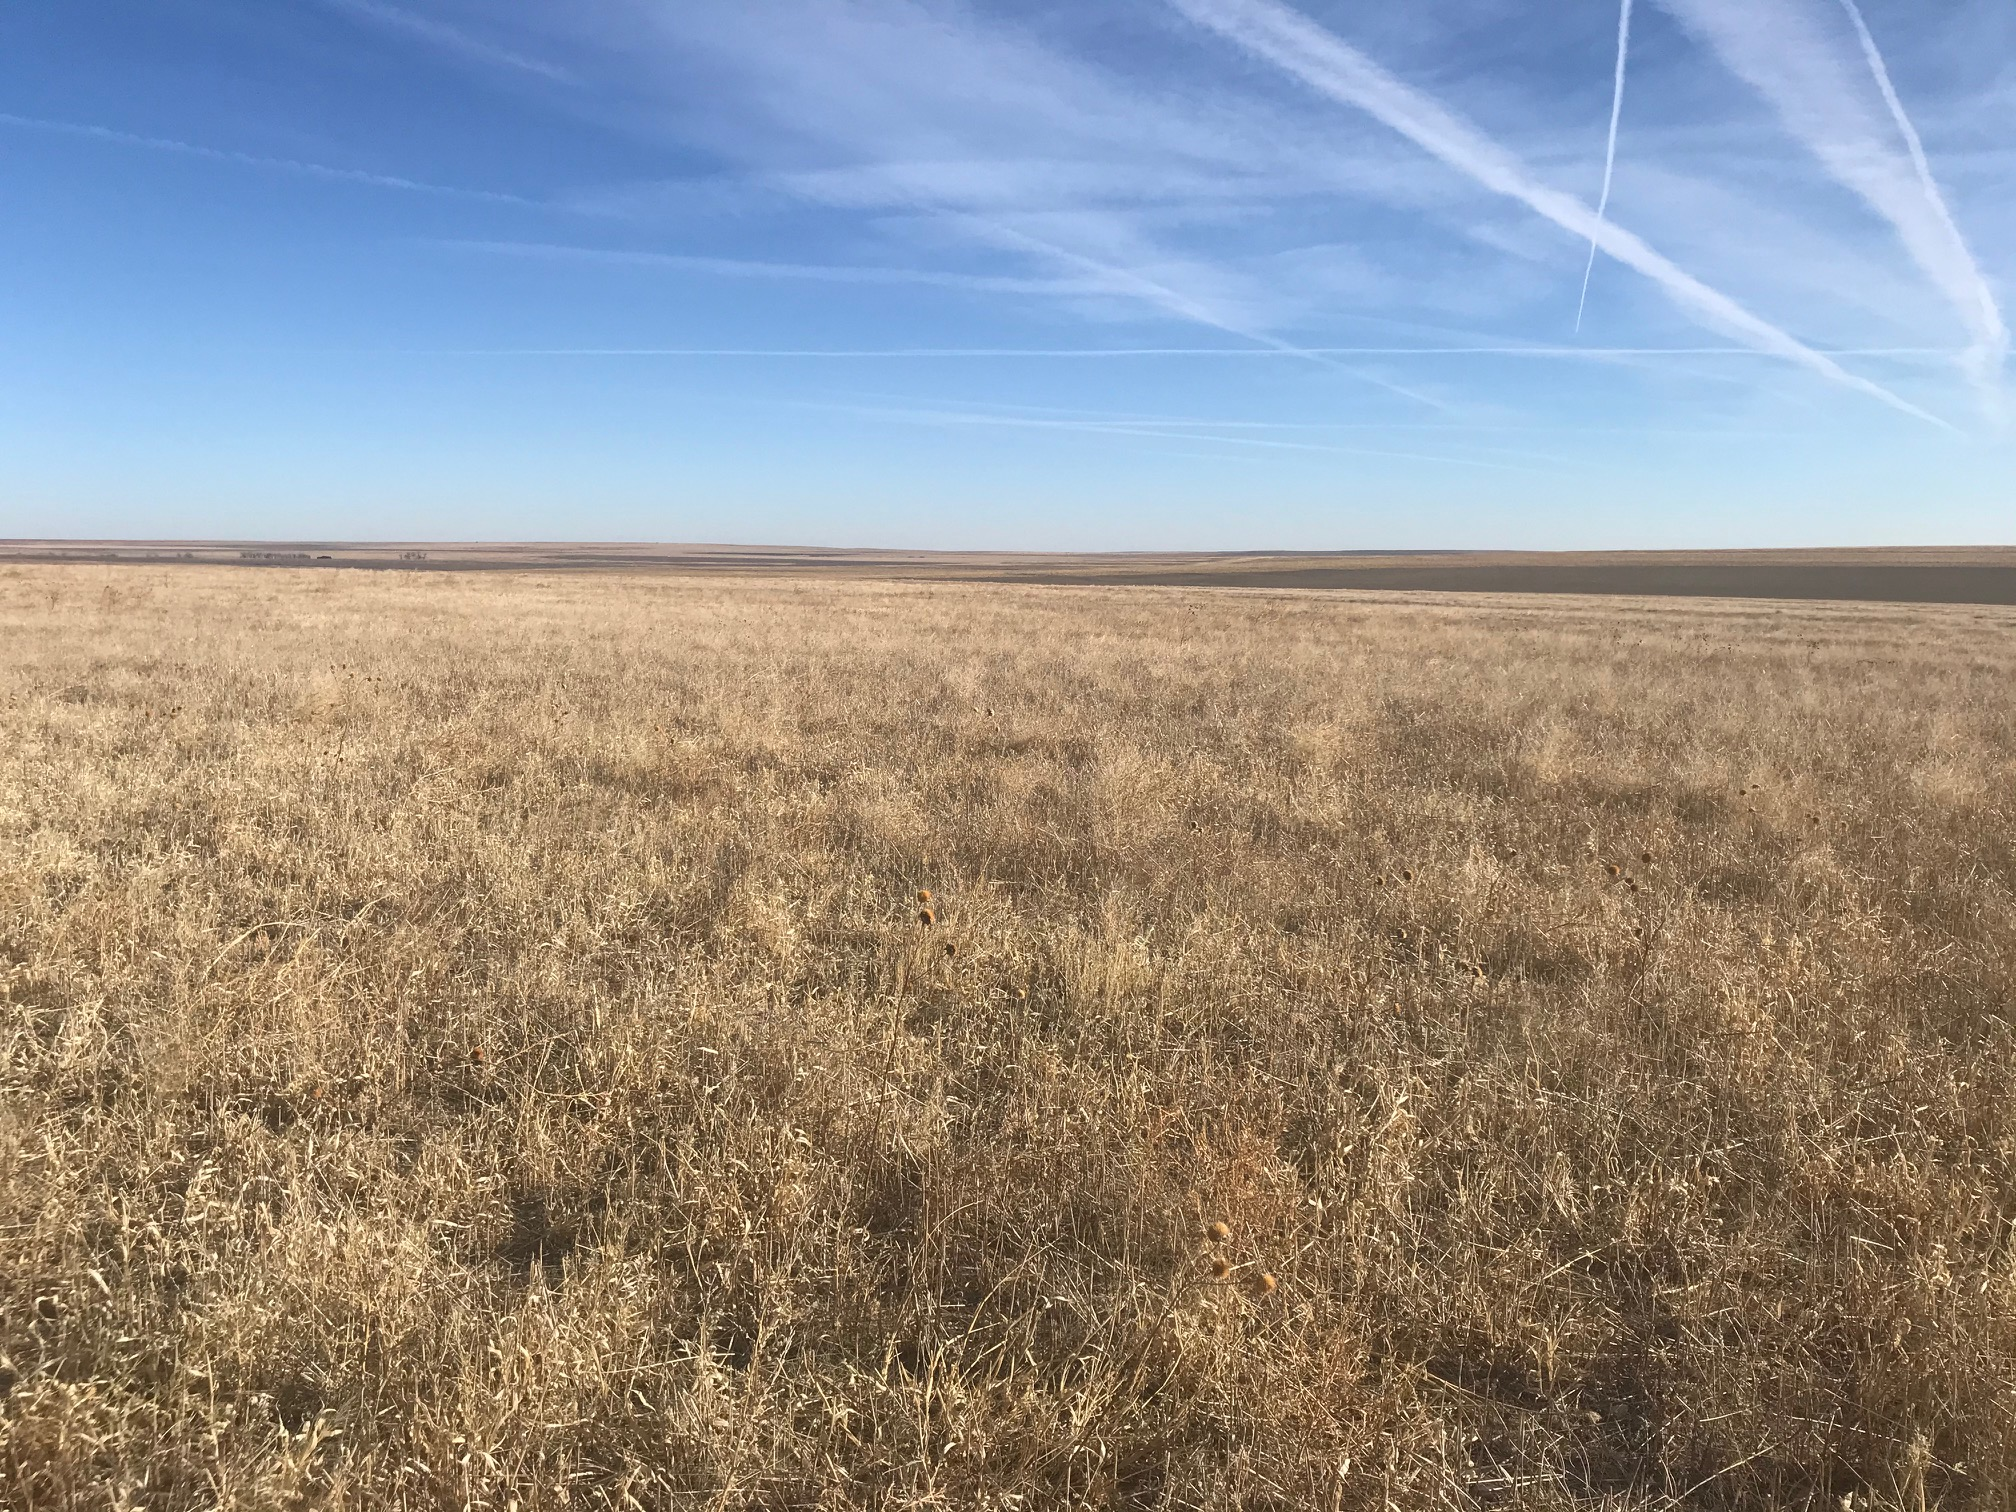 Tract-1-wheat-stubble-south-side-2.jpg